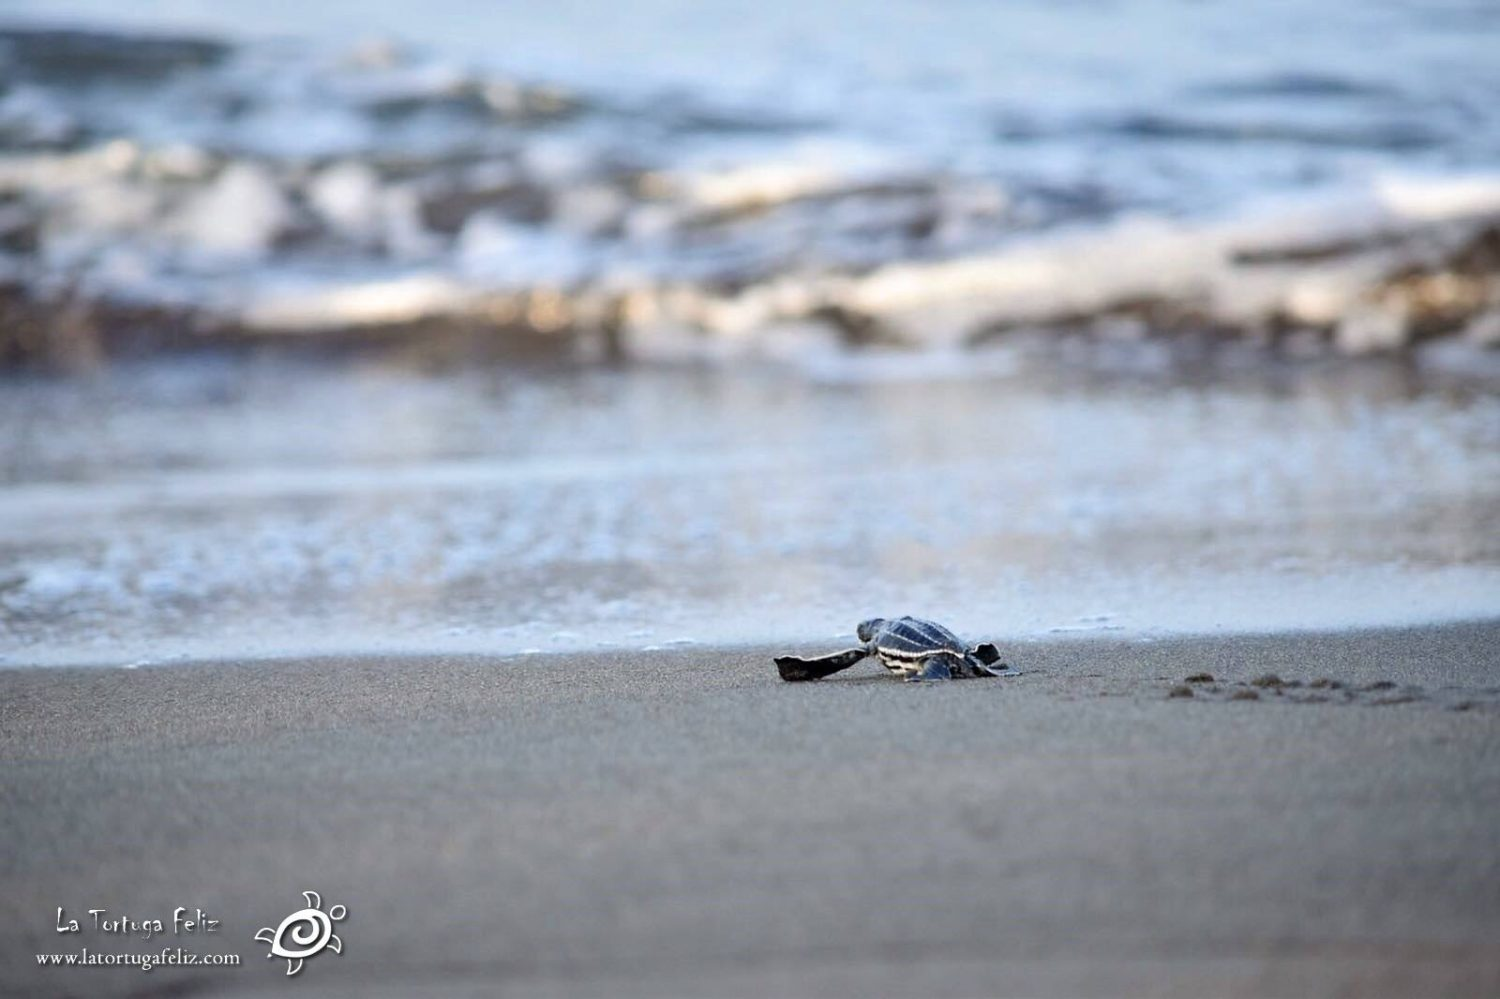 Volunteer in Costa Rica with Sea Turtles